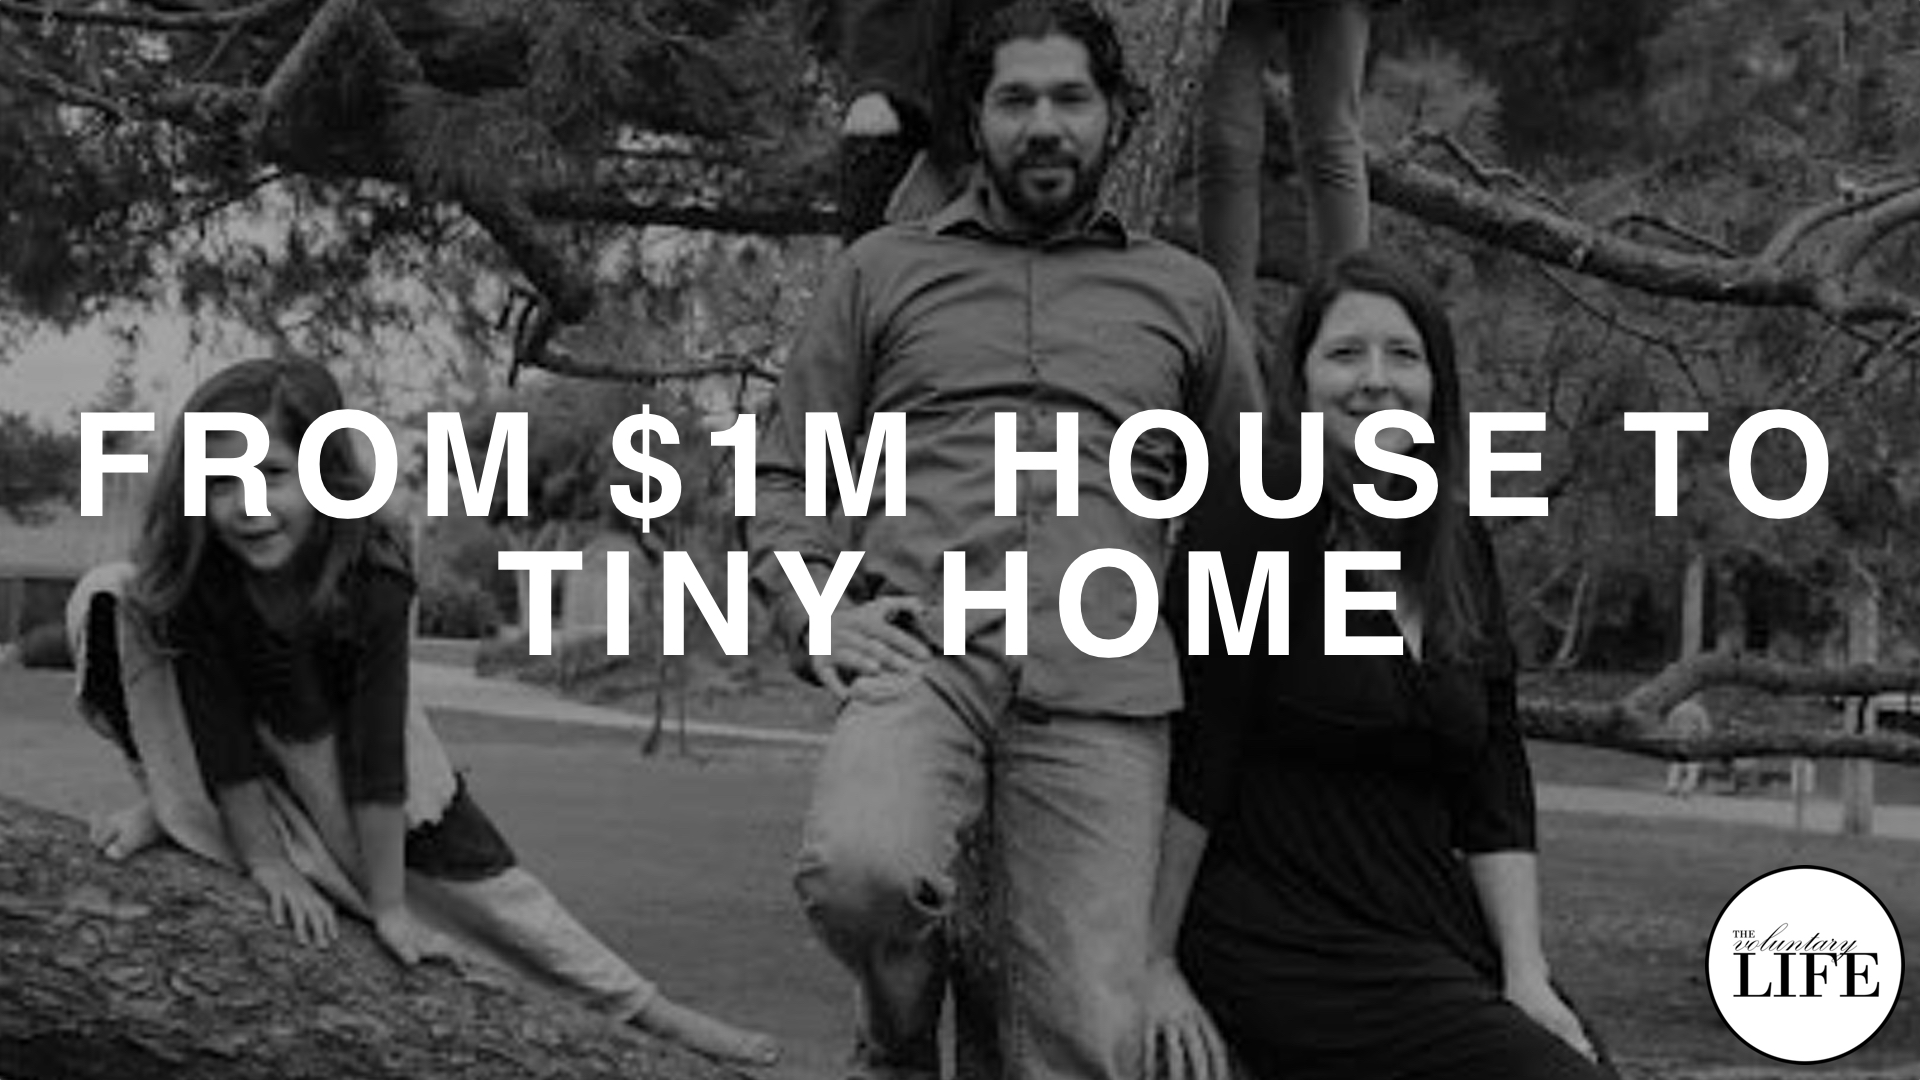 171 From Million Dollar House To Tiny Home